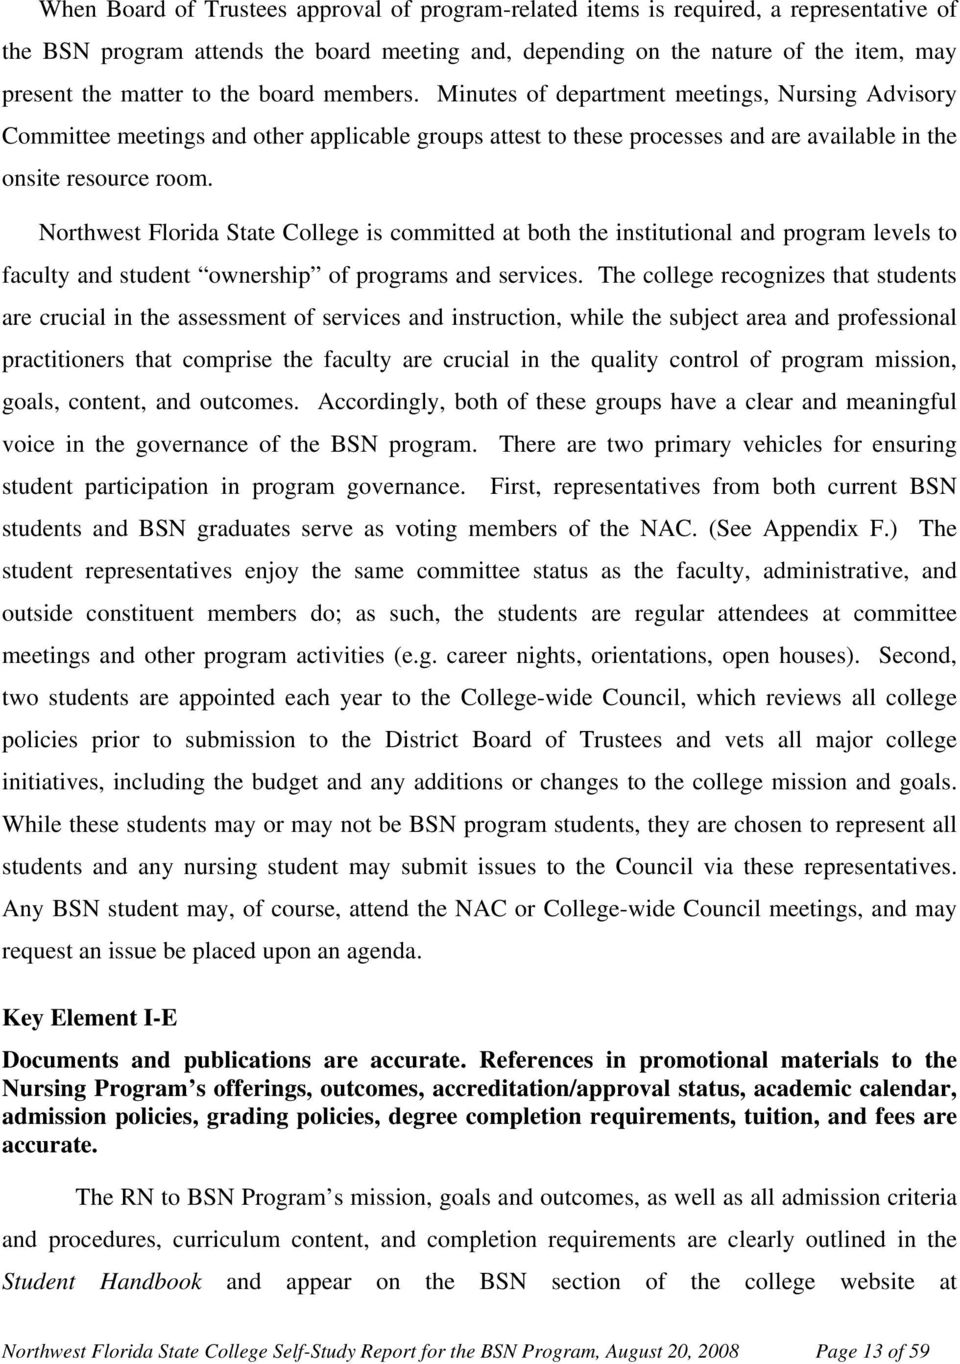 Northwest Florida State College is committed at both the institutional and program levels to faculty and student ownership of programs and services.